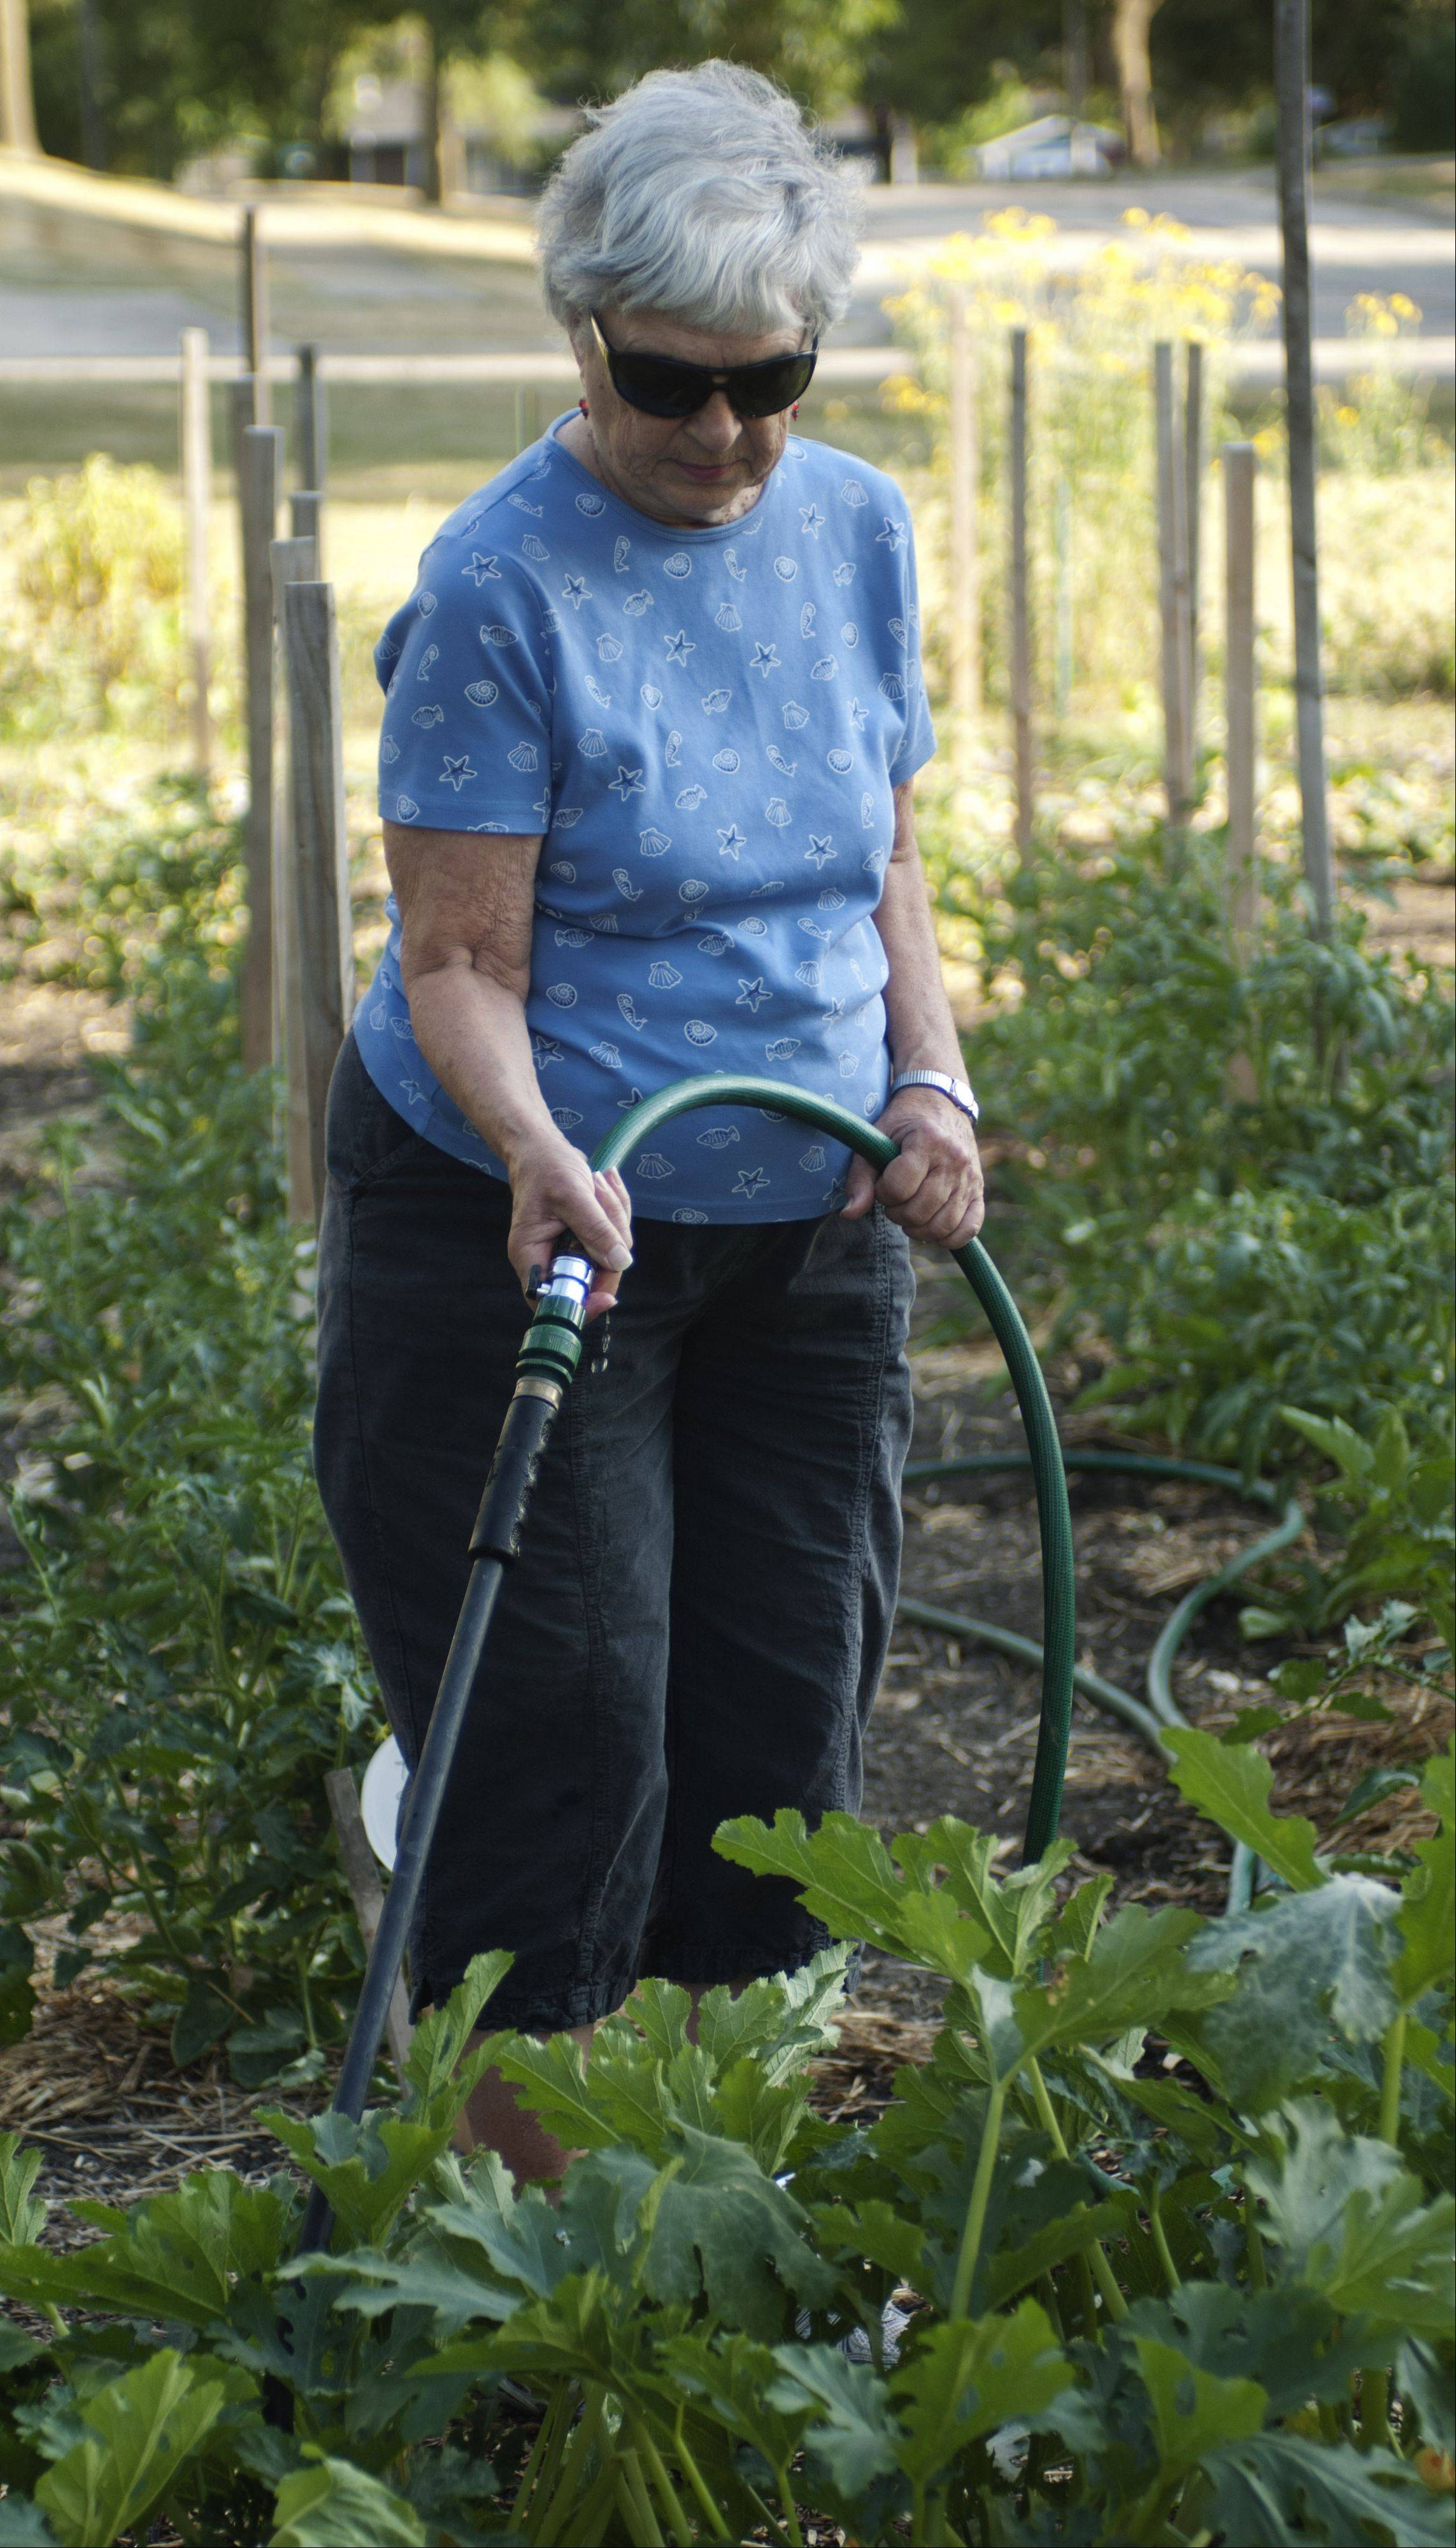 Marian Colliander waters plants at the Schaumburg Garden Club's Giving Garden, a 5,000-square-foot garden dedicated to growing produce for the Schaumburg Township food pantry.